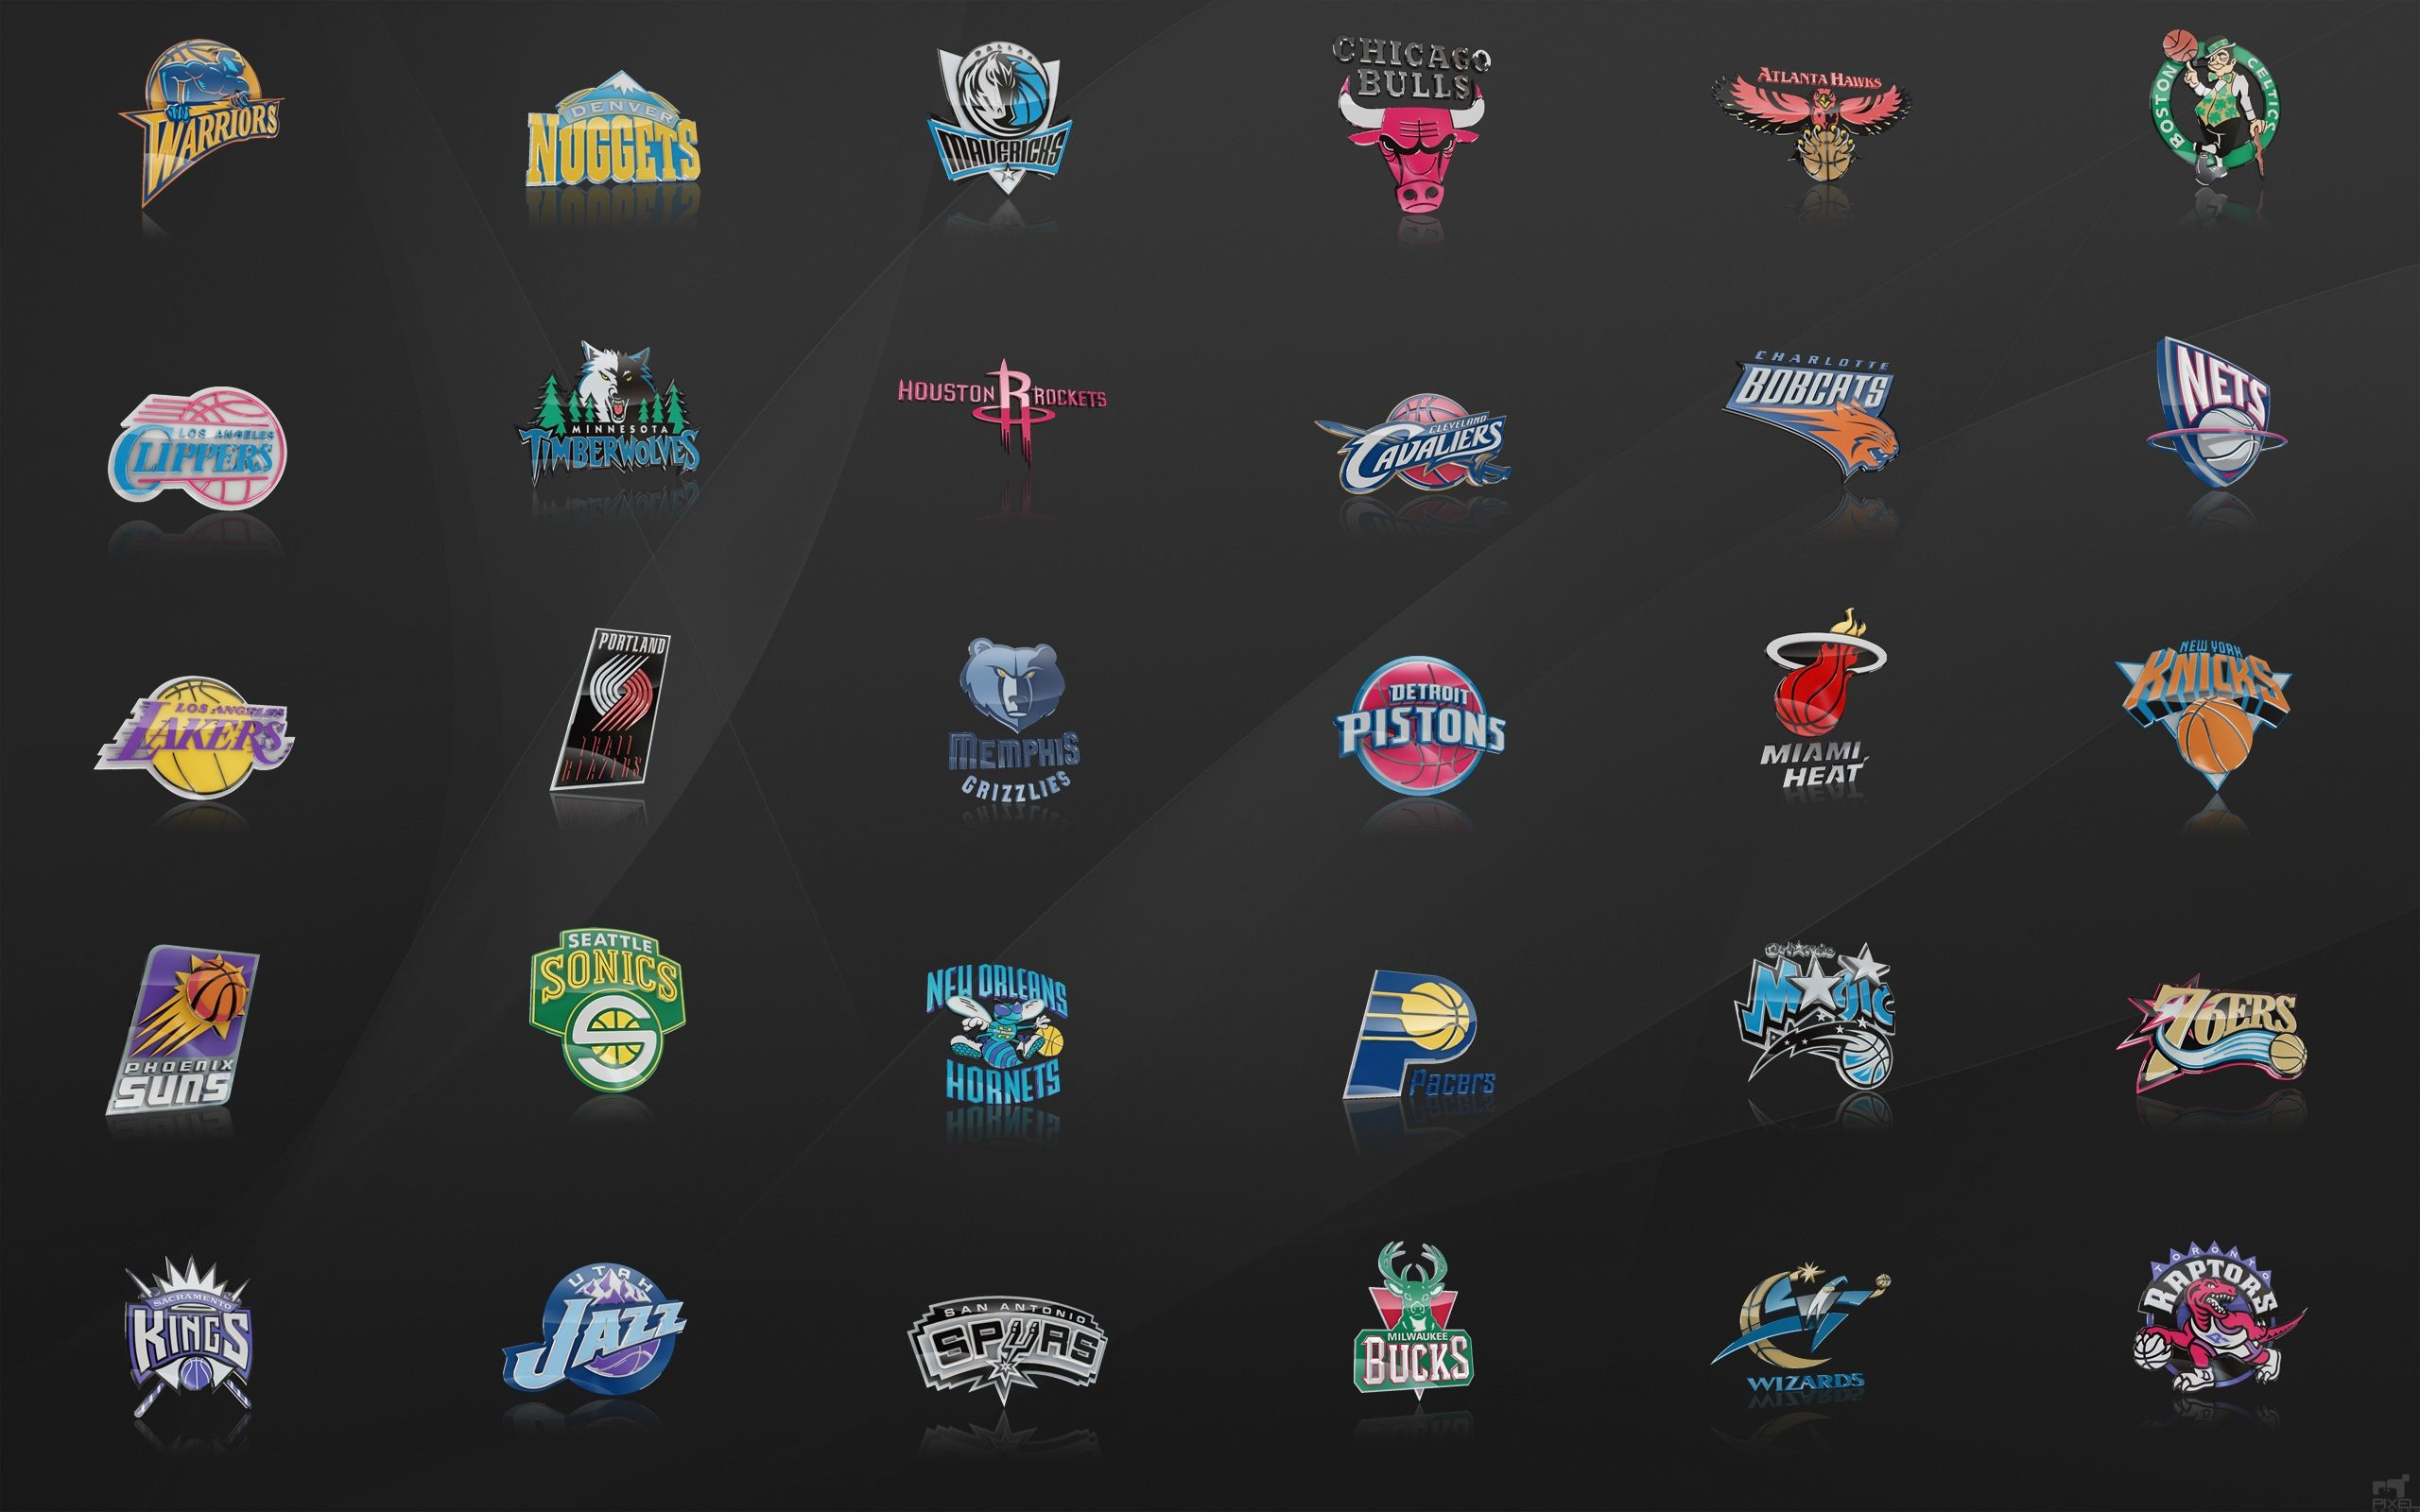 2560x1600 Nba Logo Wallpaper HD #cv8